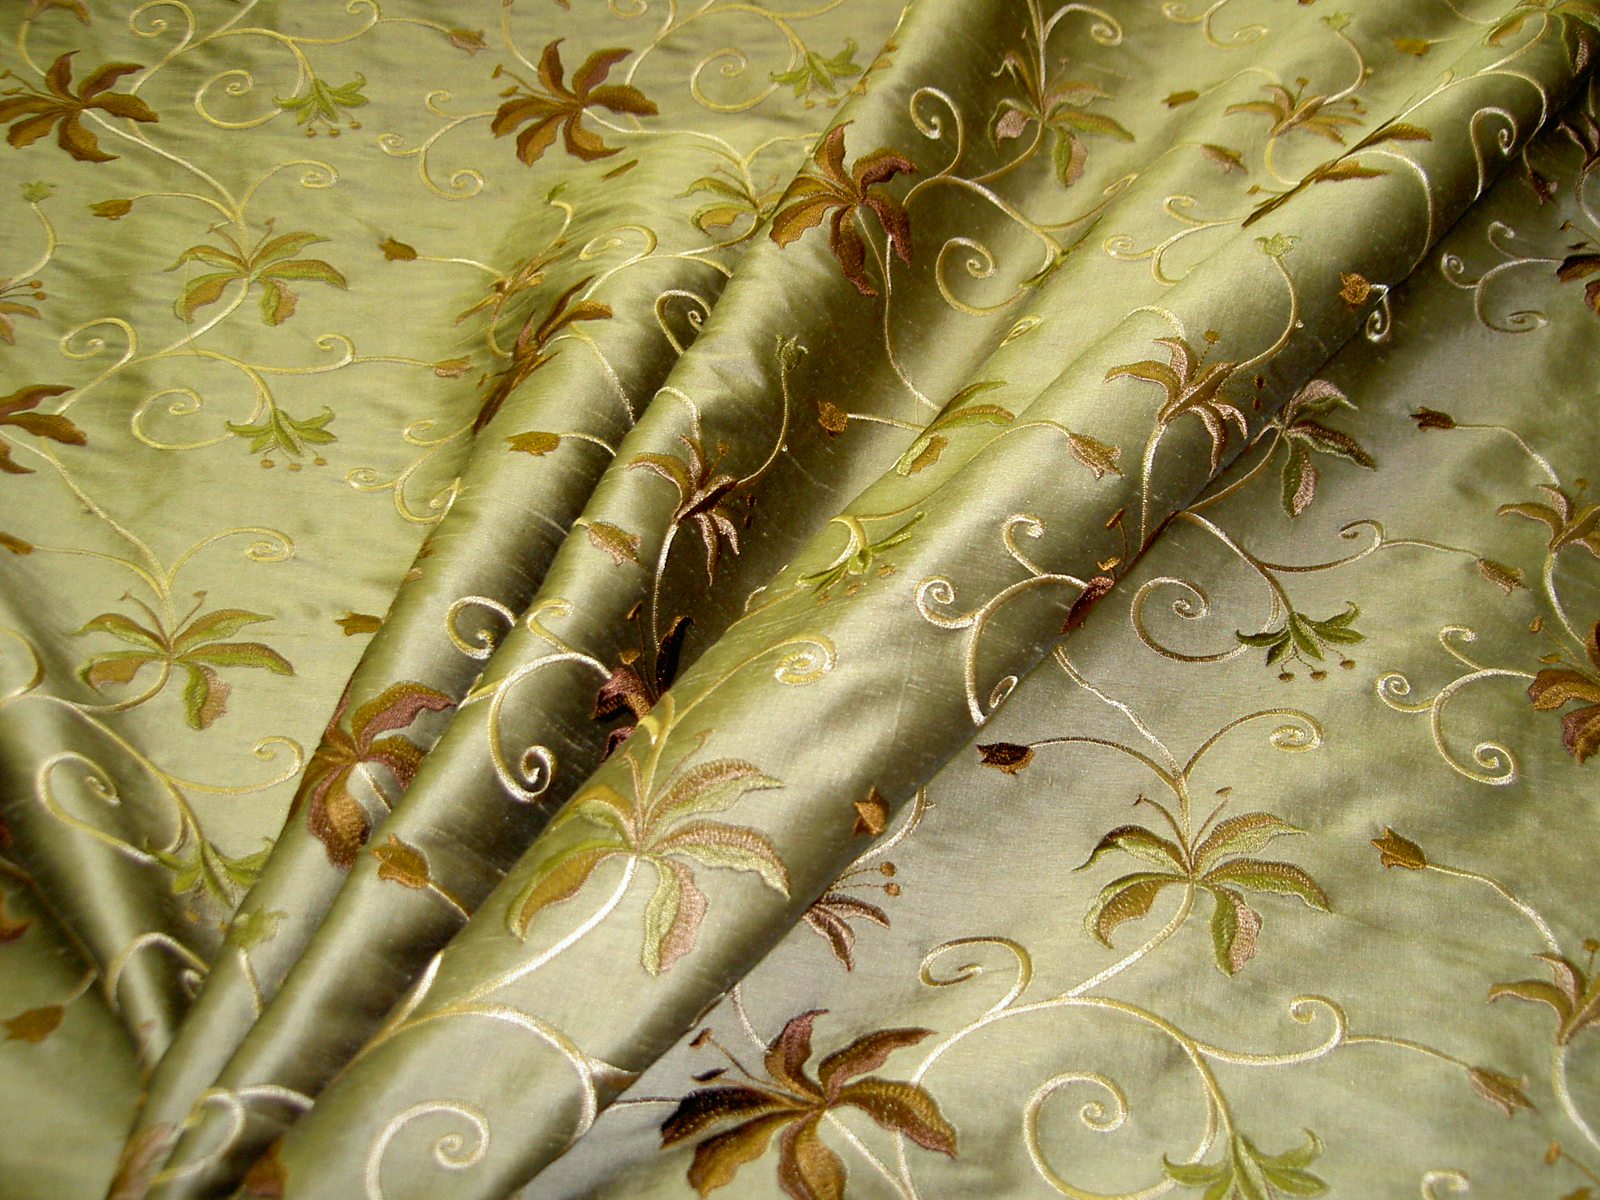 http://www.discountdesignerfabricatschindlers.com/images/WWF_World_Wide_Fabrics_Pattern_Floral_Embroidered_Color_Olive_100_Silk_Fabric_S010906-004.jpg